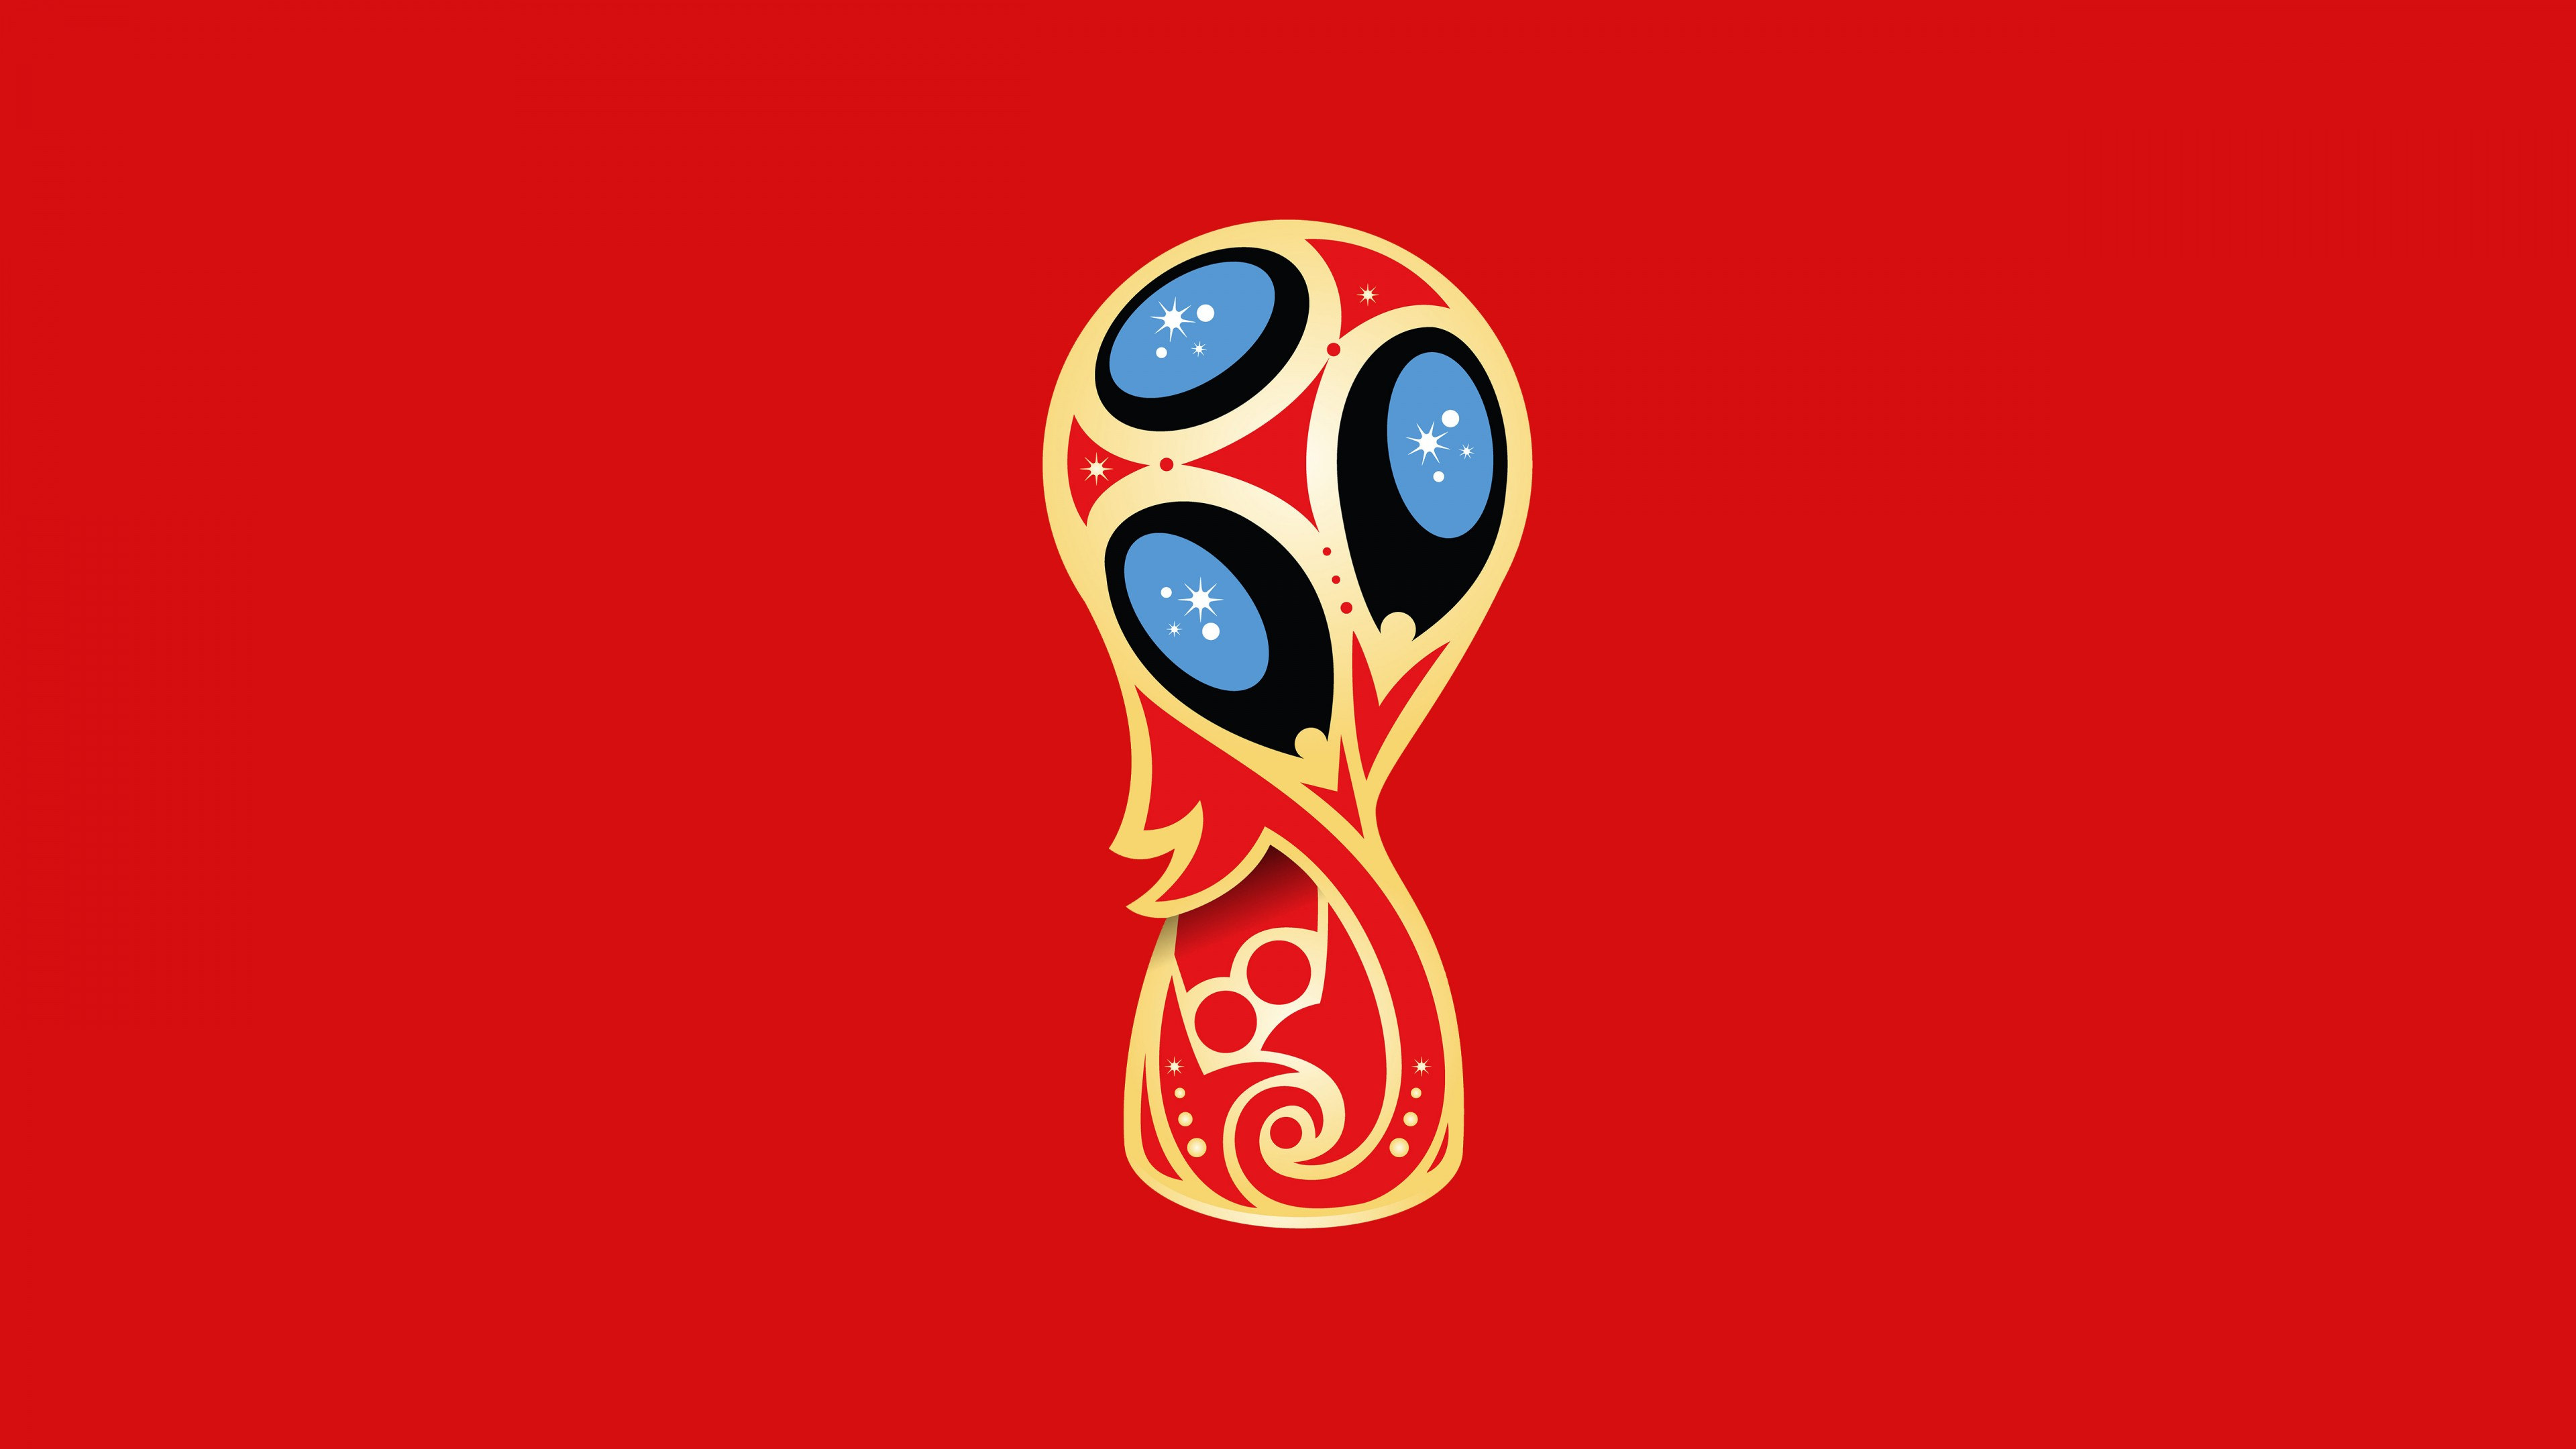 2018 FIFA World Cup in Russia 4k Wallpaper Background 3840x2160